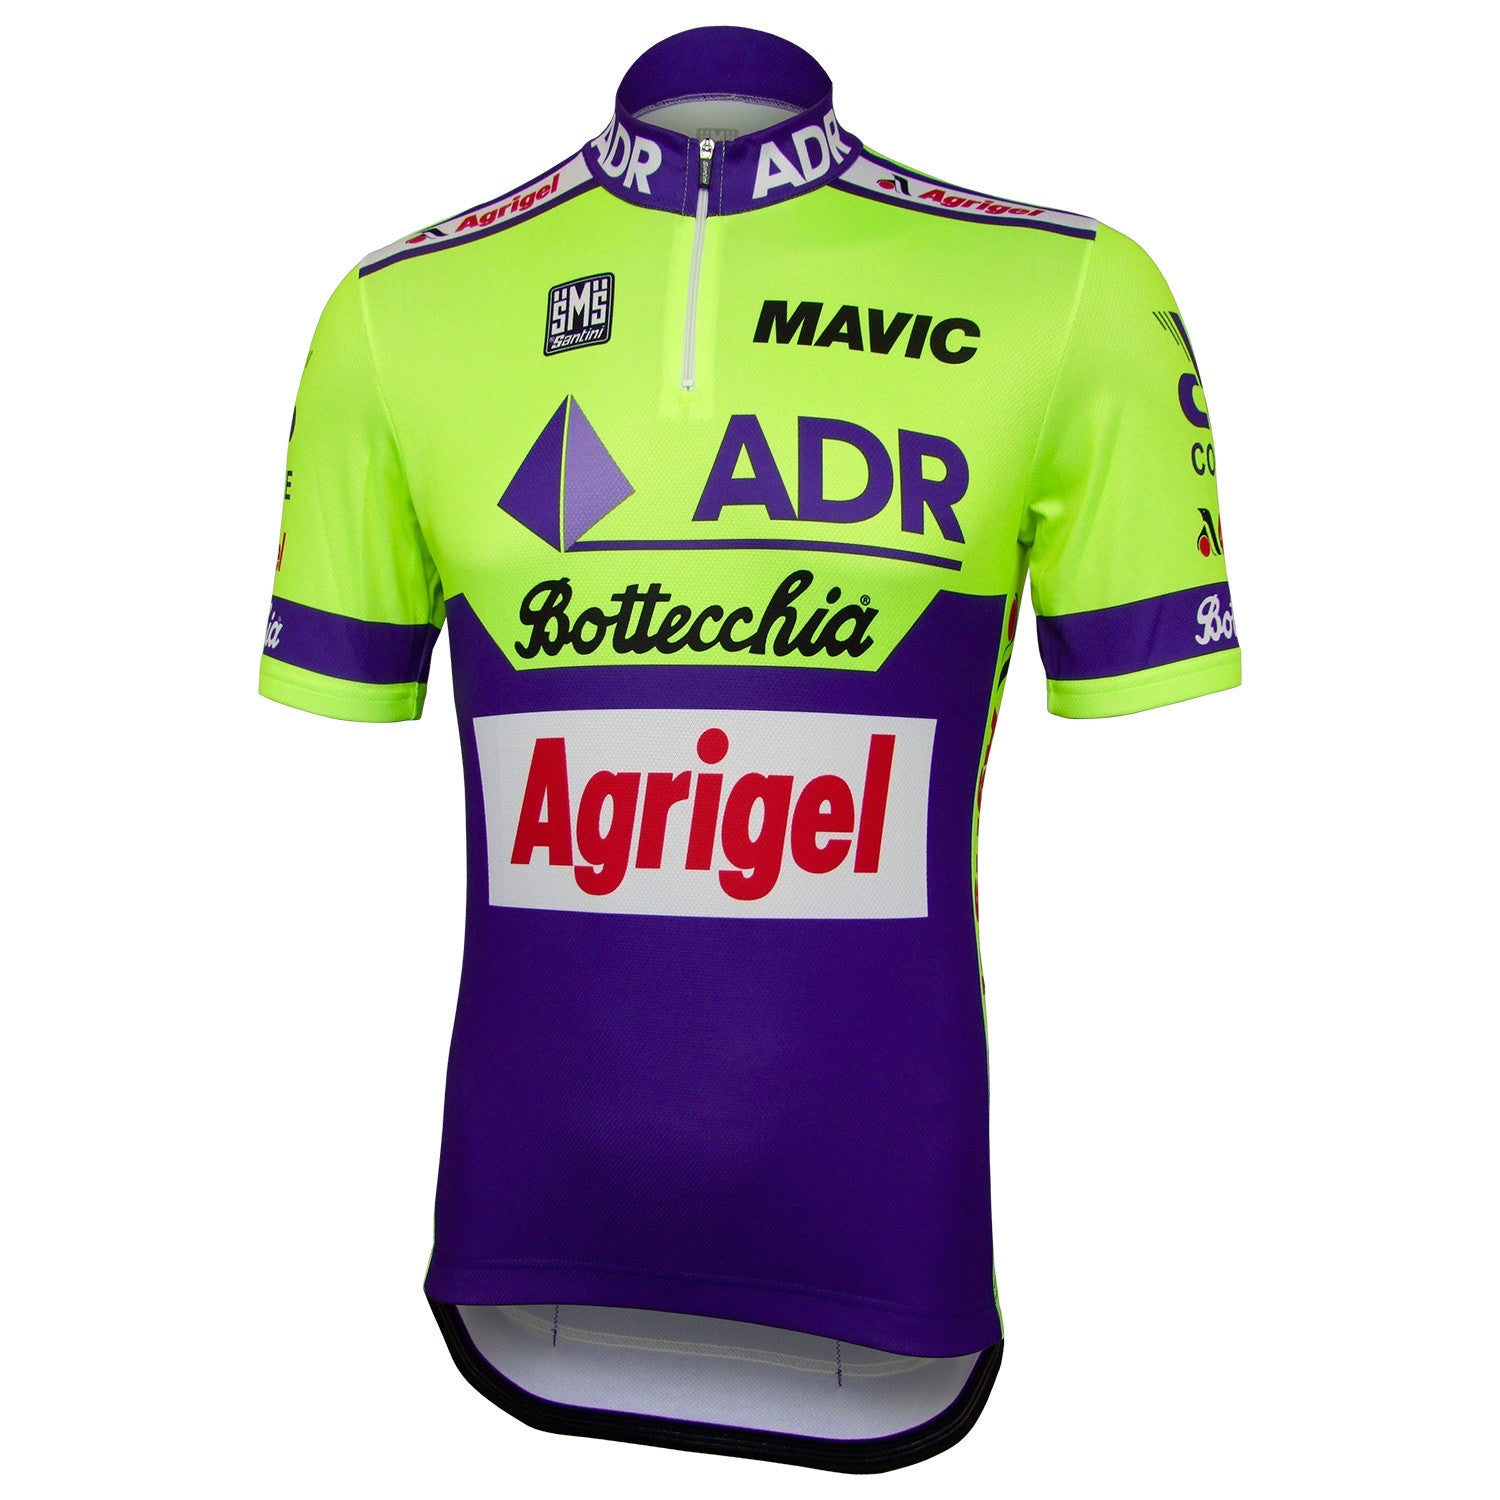 ADR/Agrigel/Bottecchia 1989 Retro Team Jersey (14cm Zip)